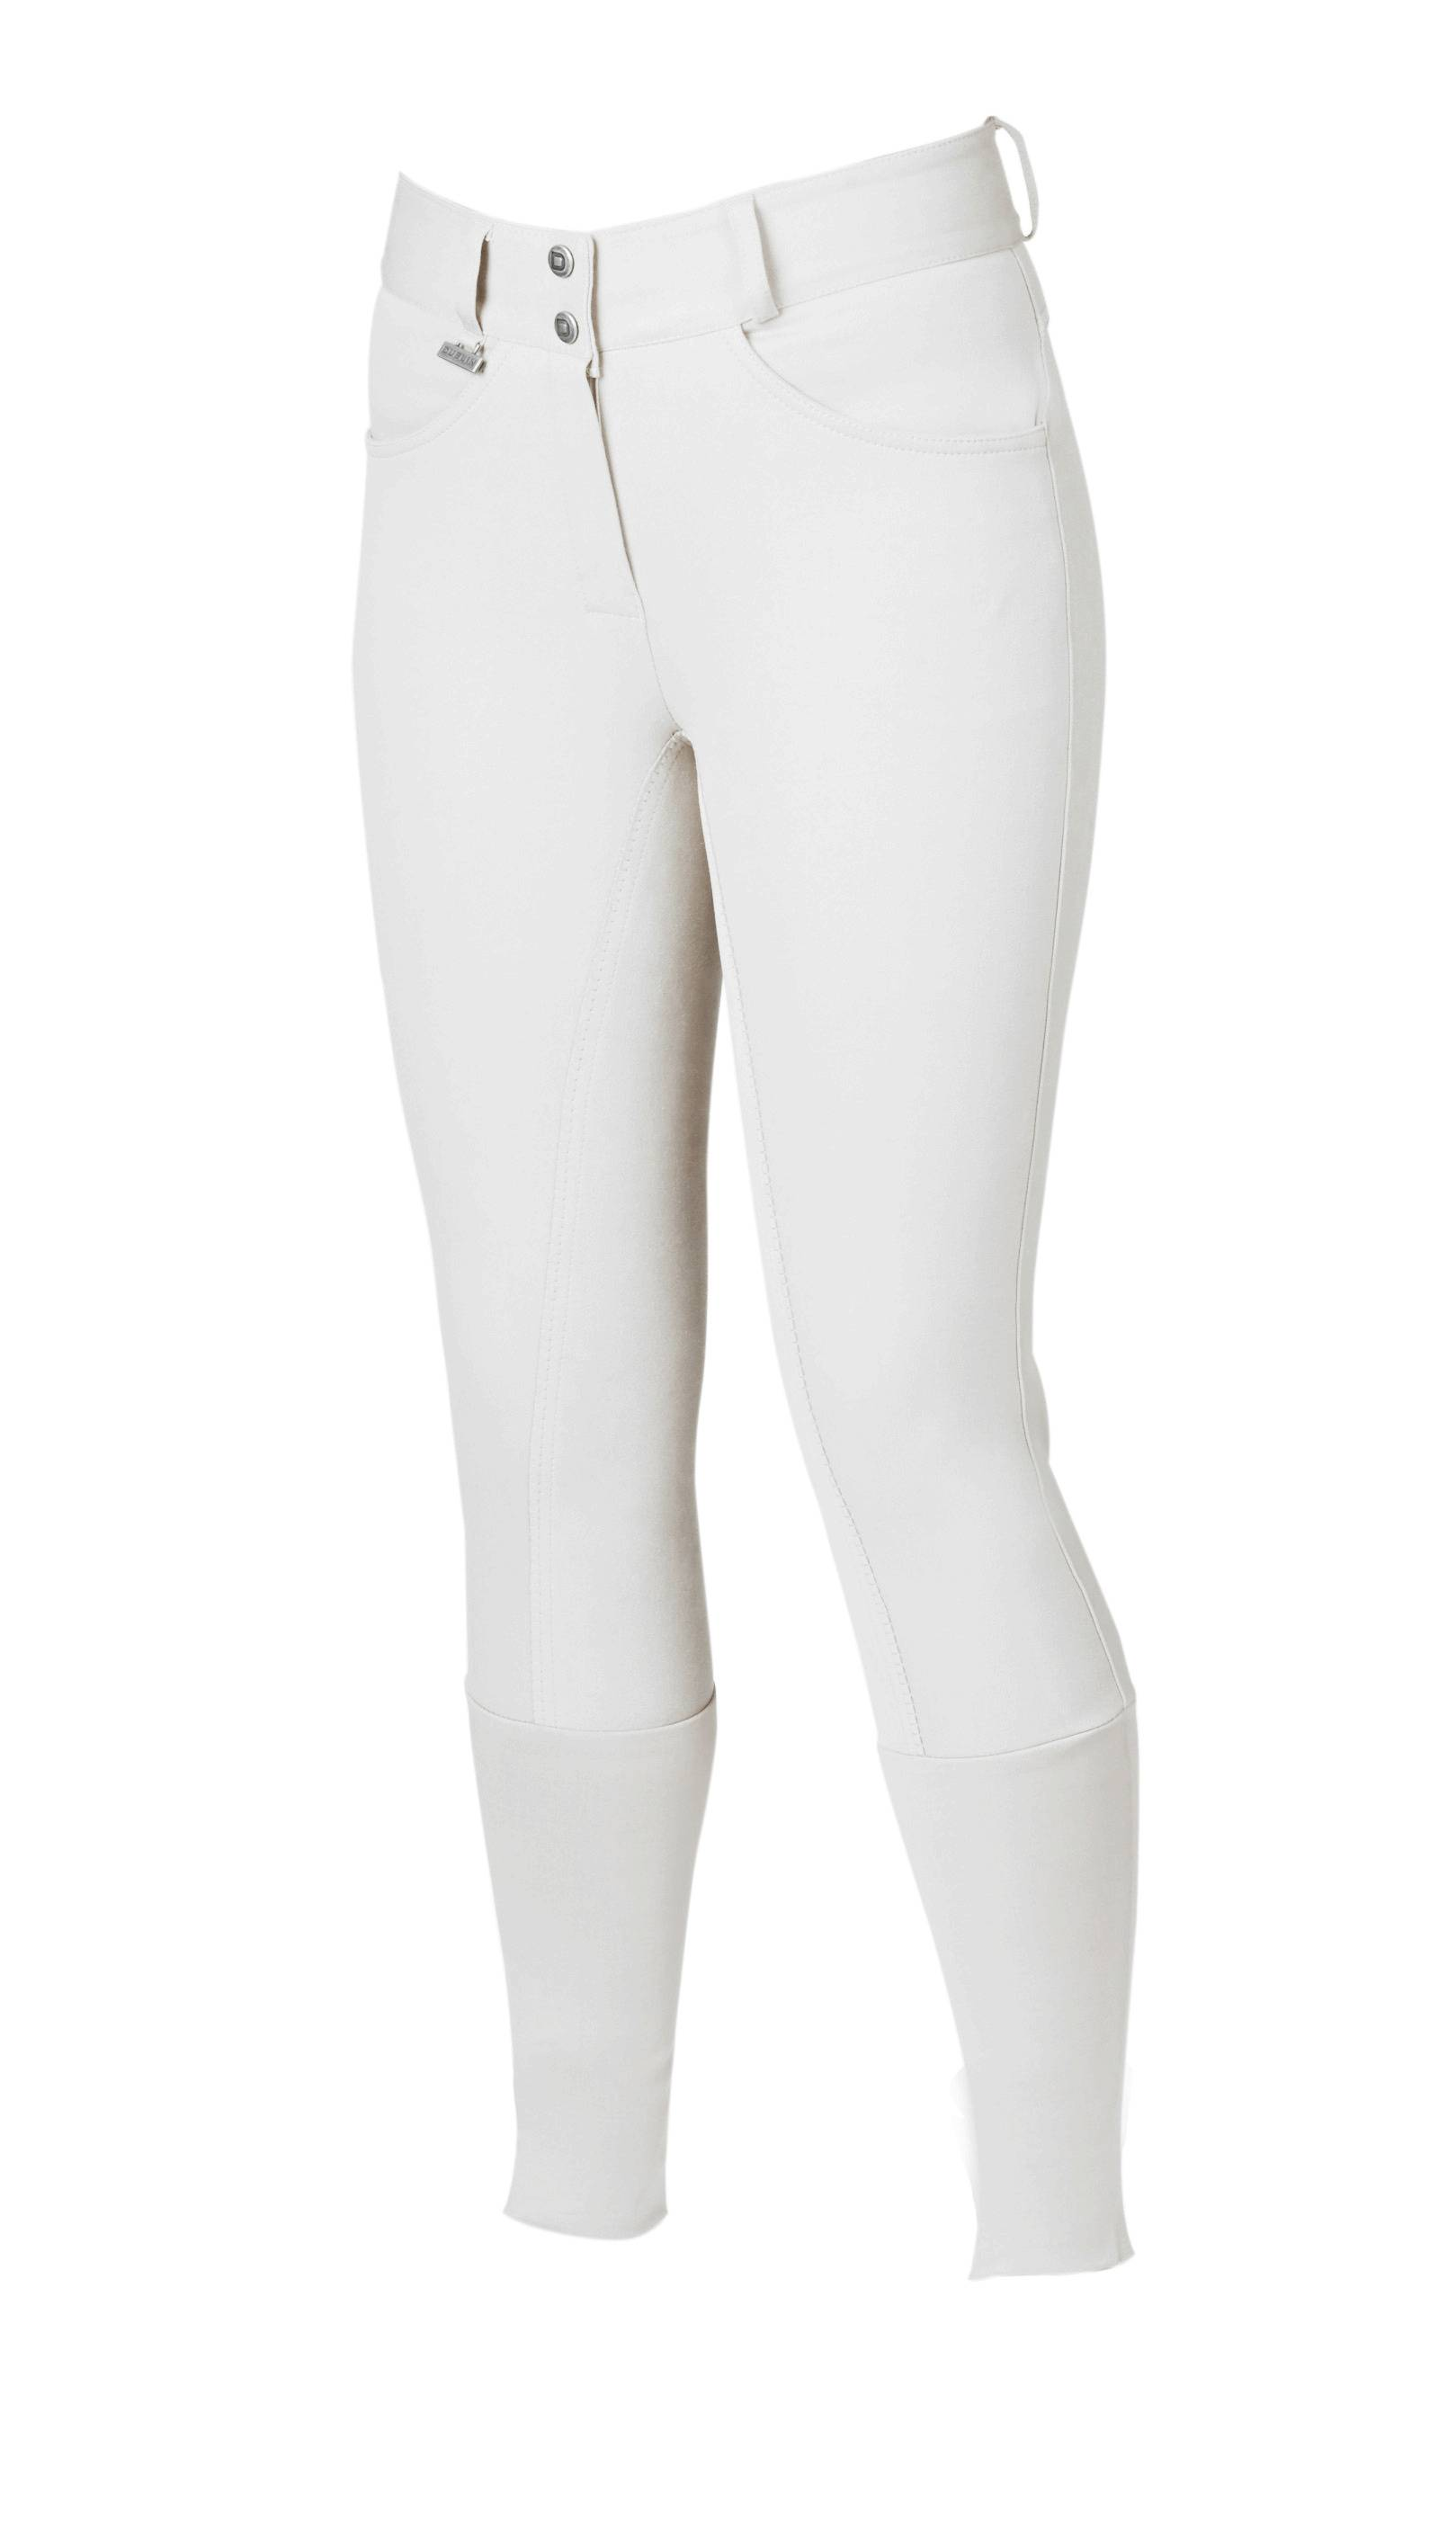 Dublin Active Slender Breeches - Ladies, Full Seat